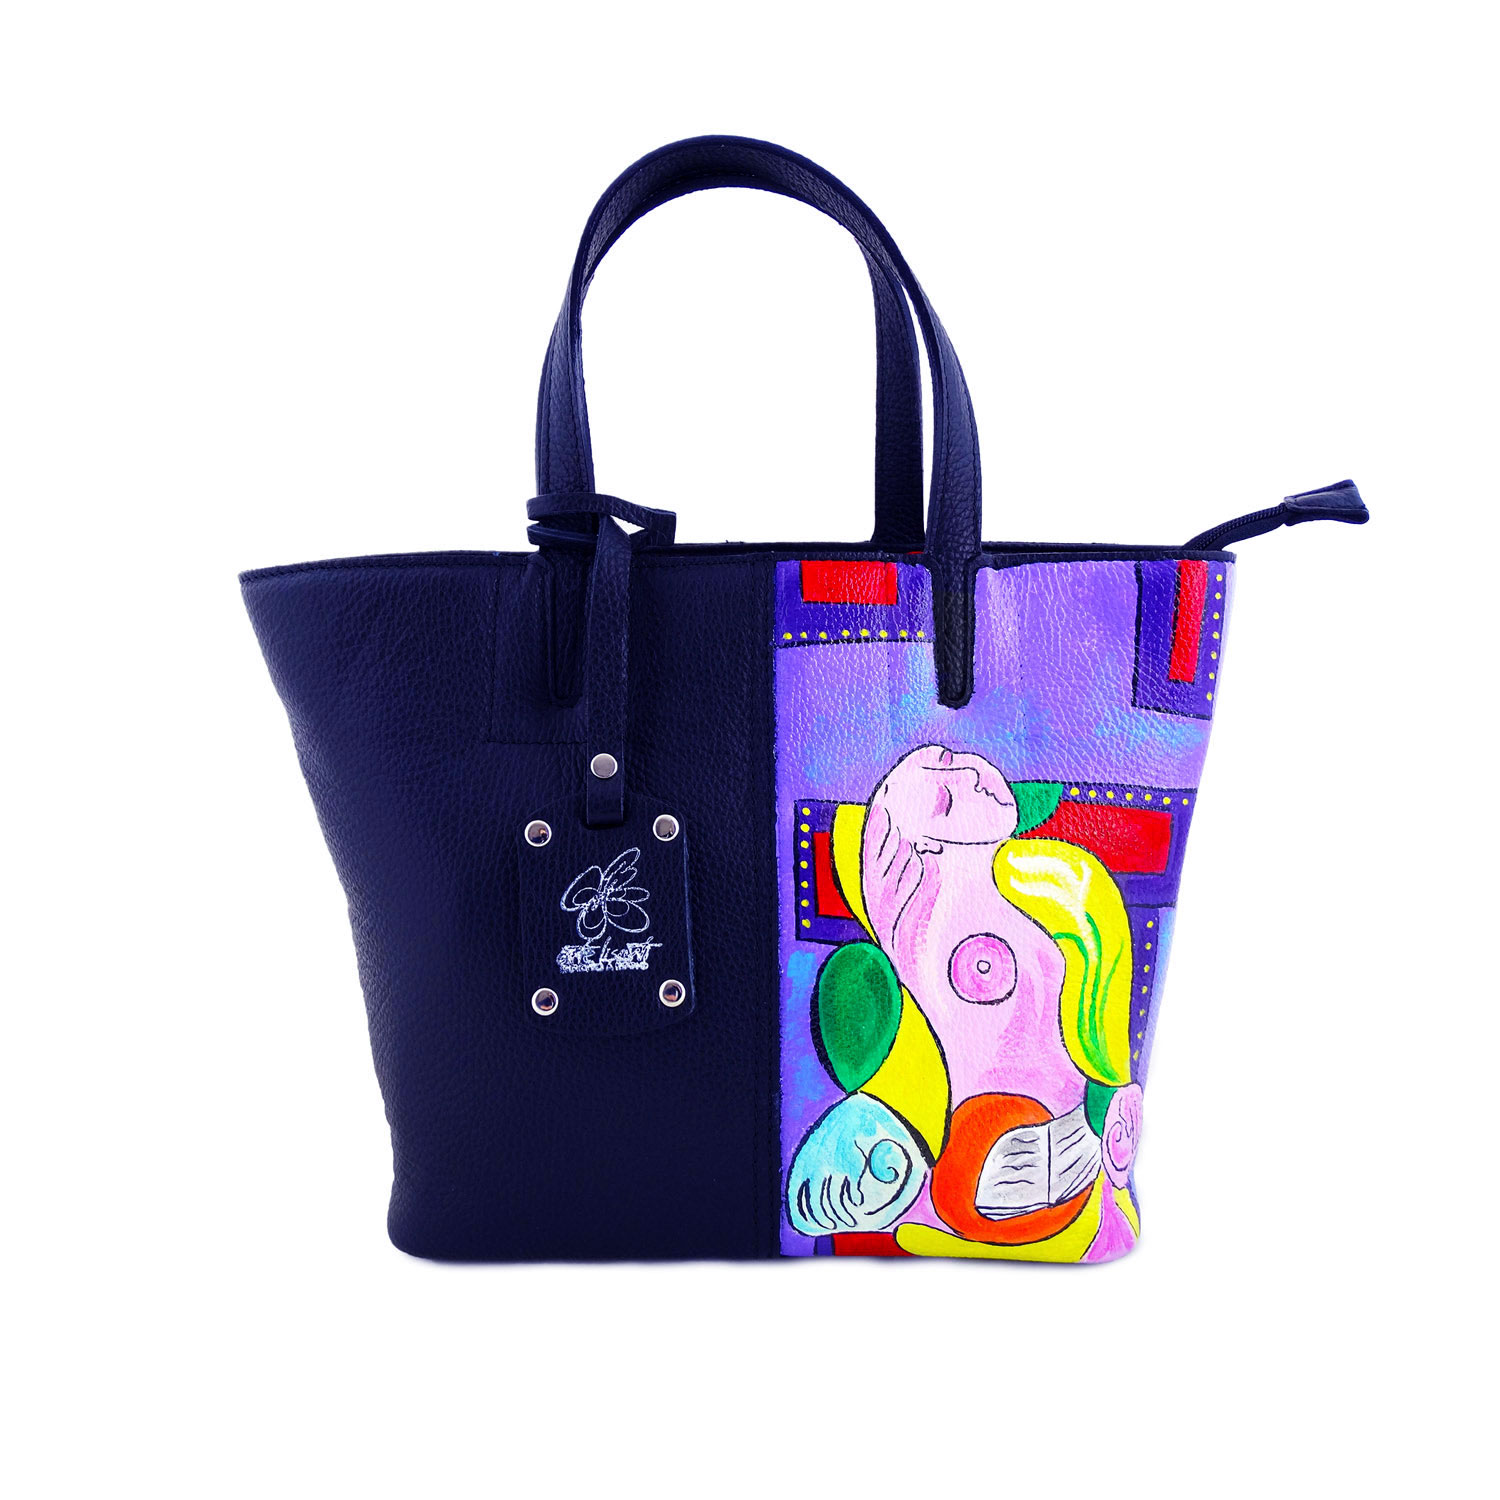 Hand painted bag - Reading Marie Therese by Picasso